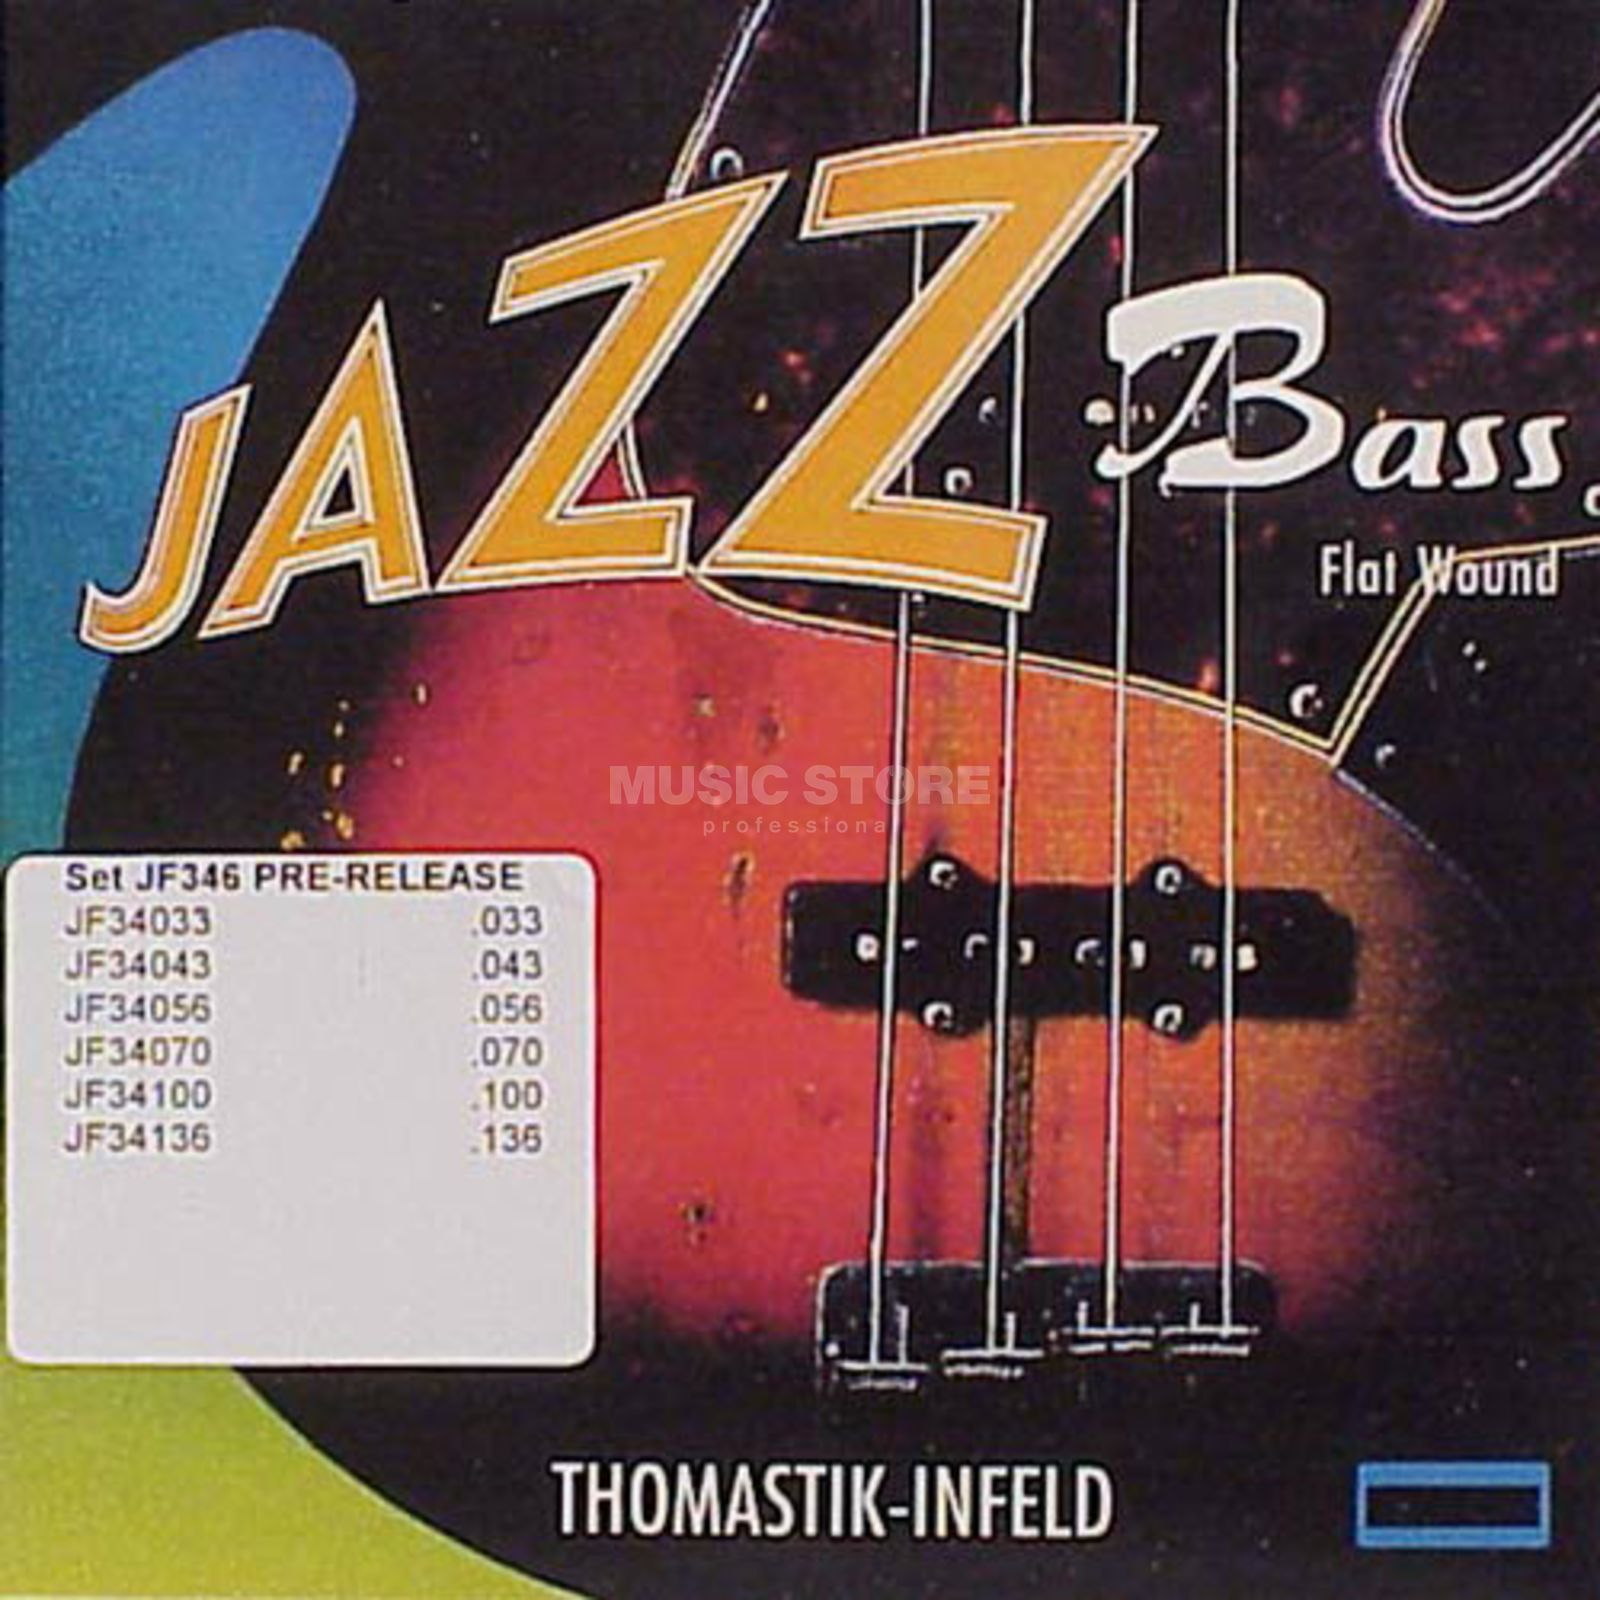 Thomastik 6 Bass Srtings JF 346 33-136 Nickel Flat Wound Produktbillede